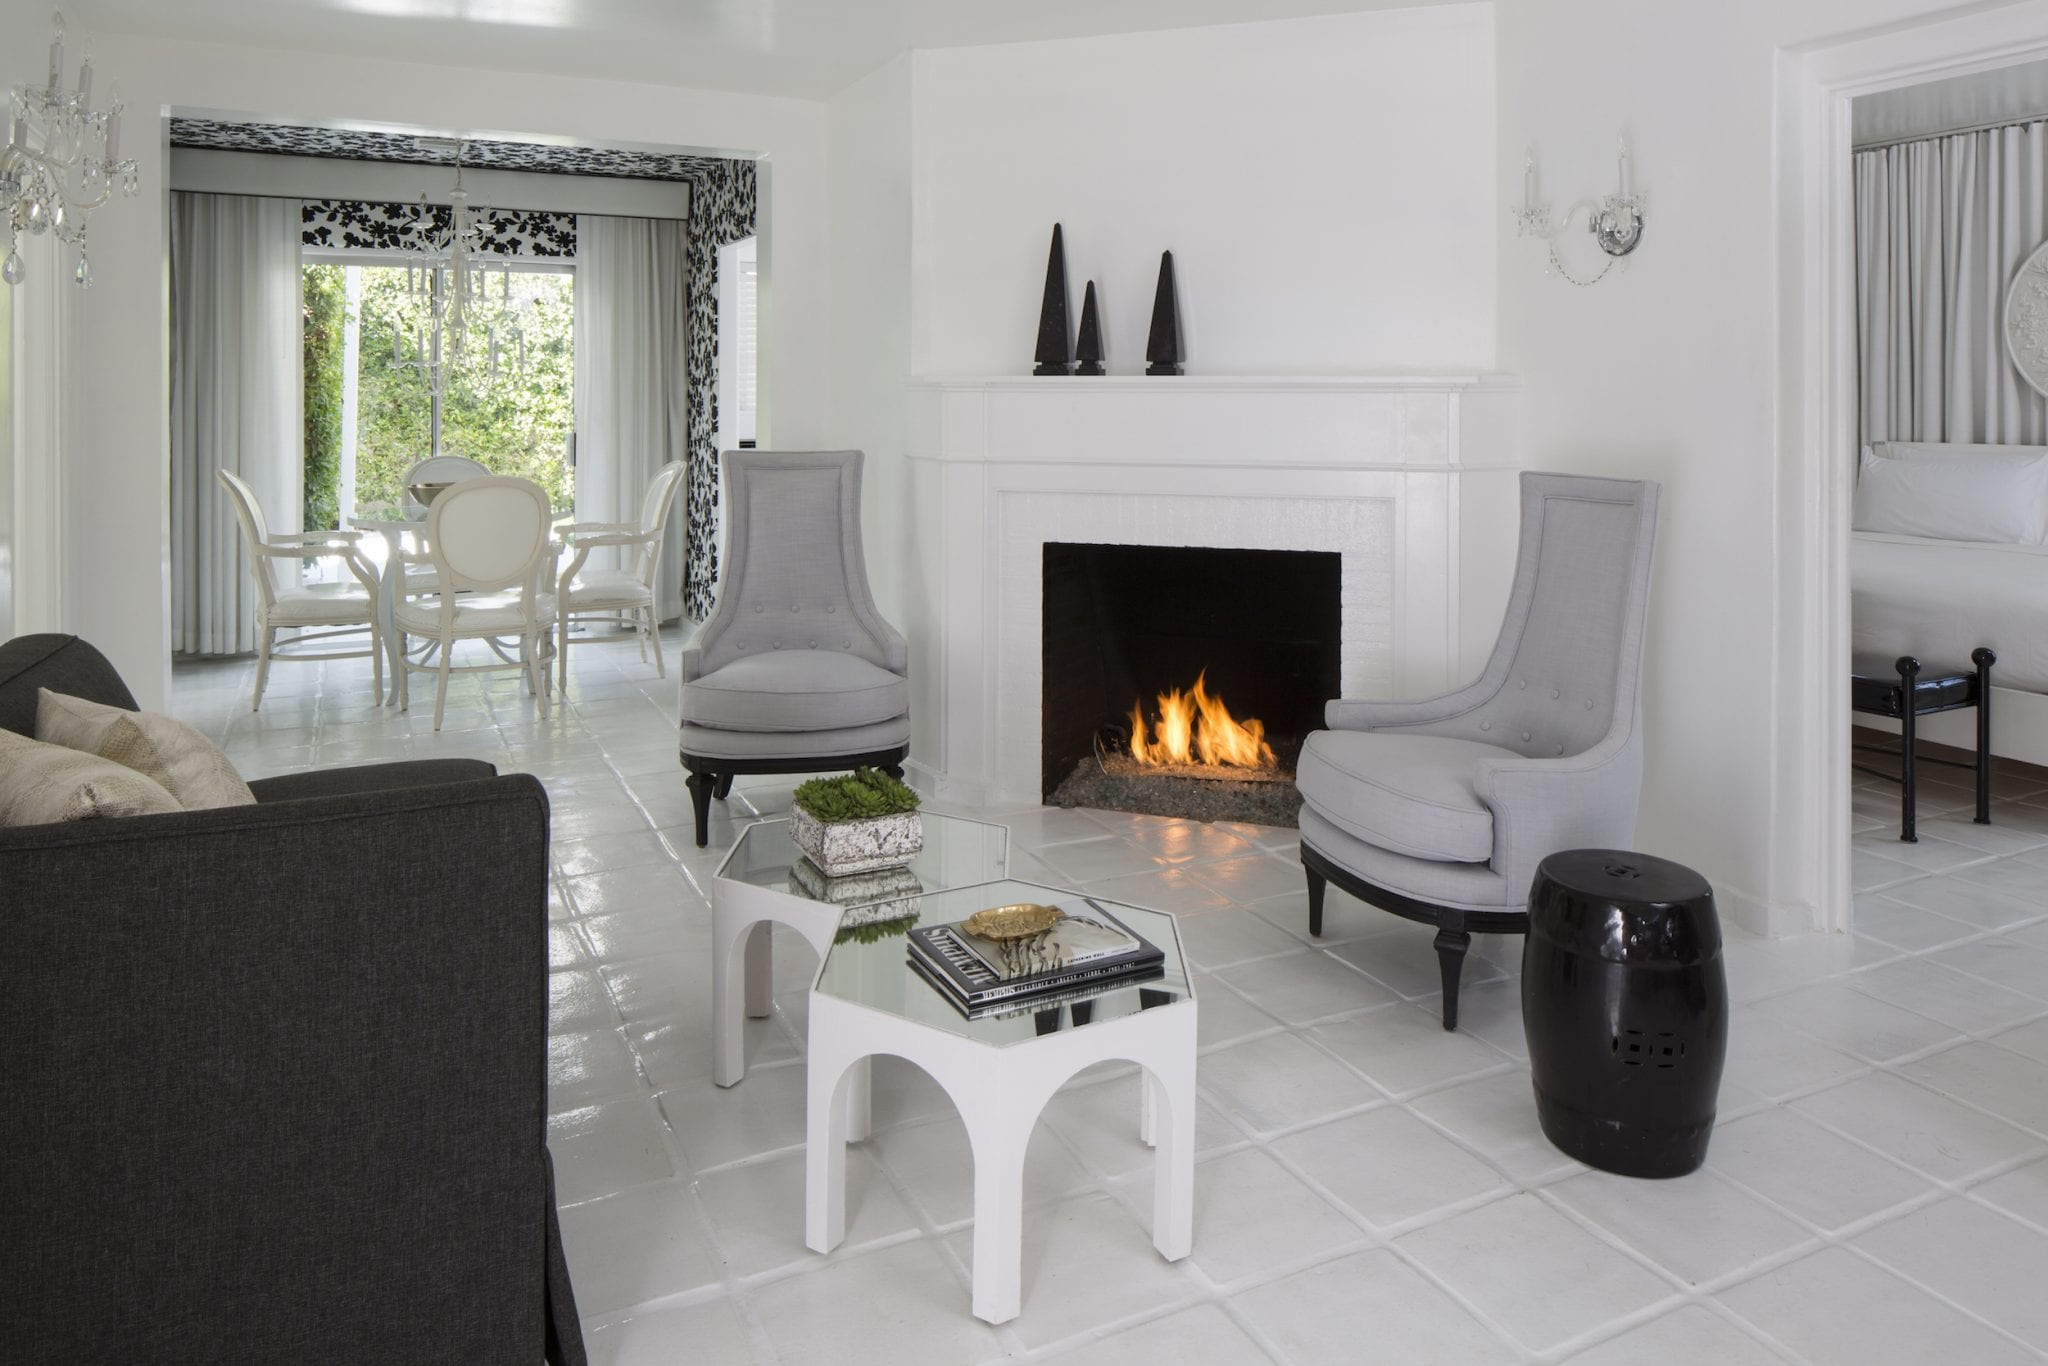 Room with fireplace, chairs and table